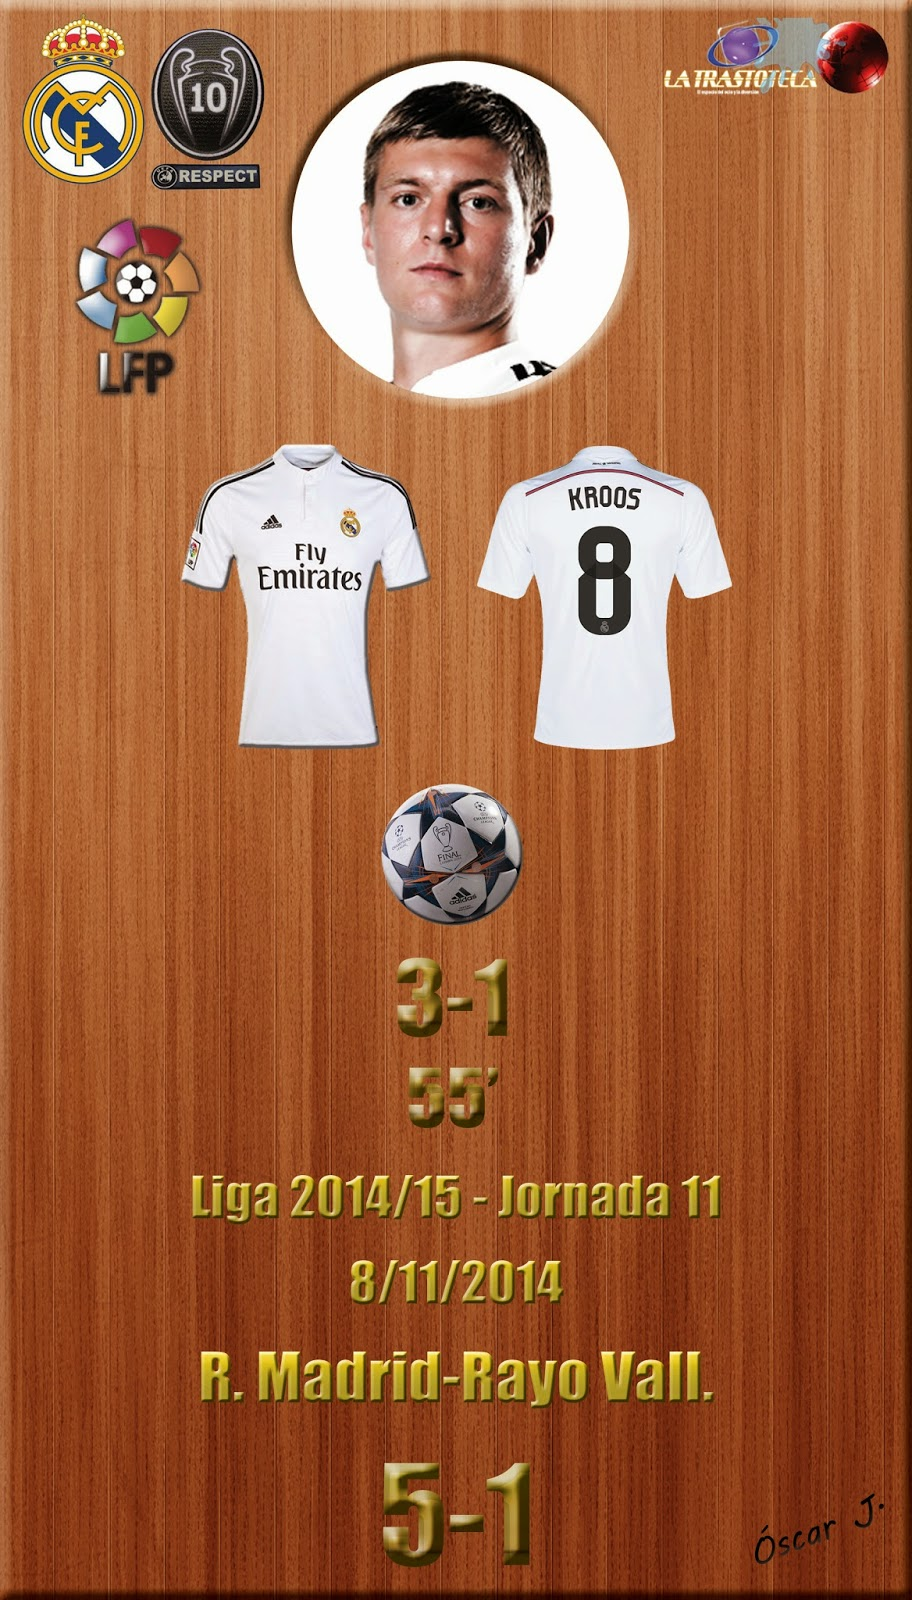 Kross - (3-1) - Real Madrid 5-1 Rayo - Liga 2014/15 - Jornada 11 - (8/11/2014)